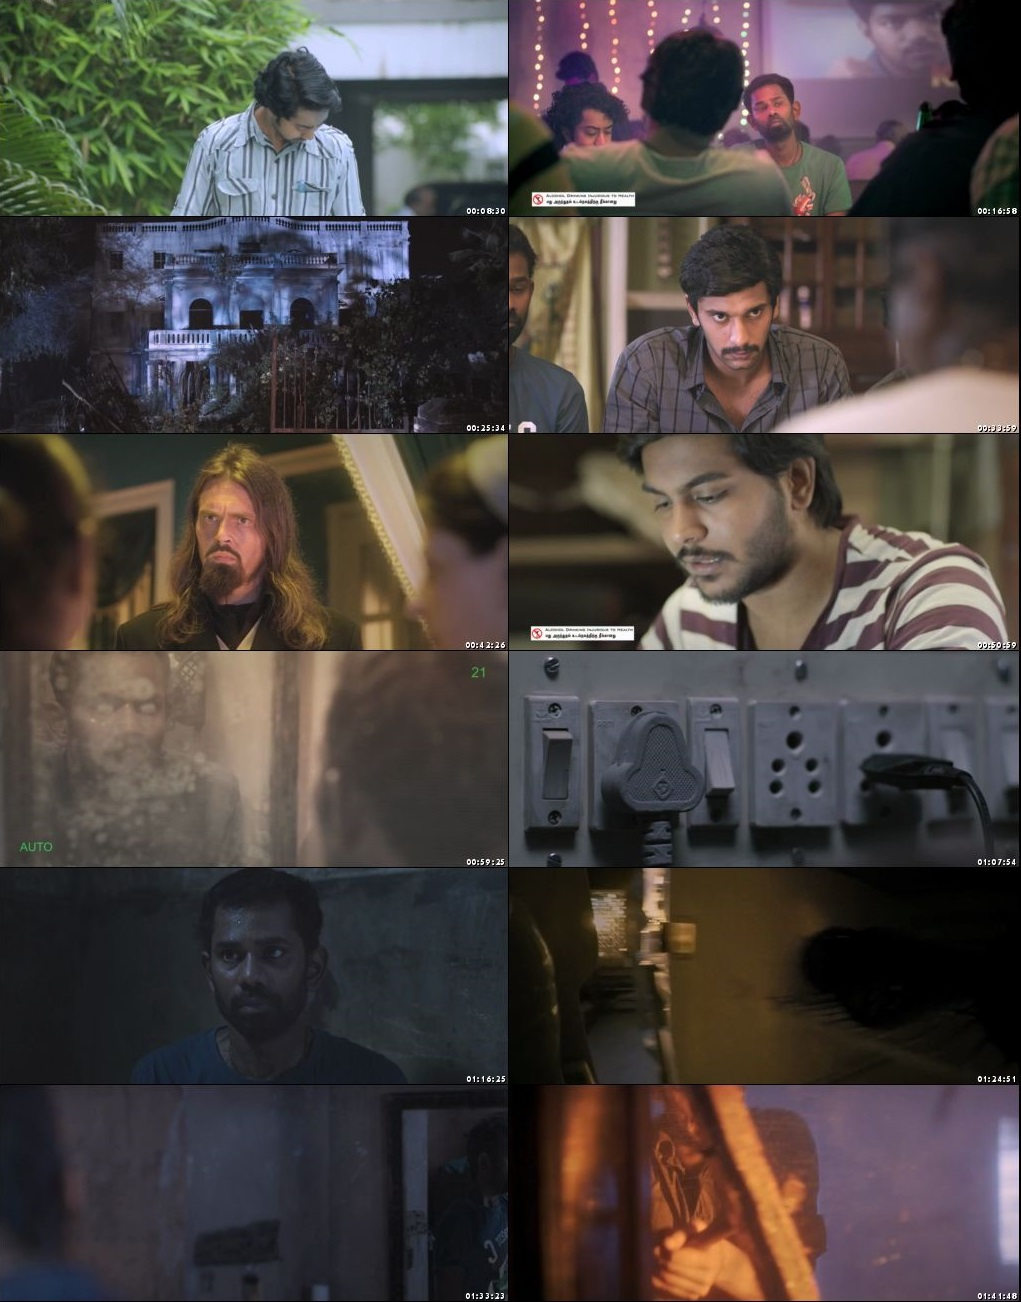 Demonte Colony 2015 latest movies free download, Demonte Colony 2015 hd movies download, Demonte Colony 2015 new movie download,Demonte Colony 2015 download free movies online, Demonte Colony 2015 hd movies free download